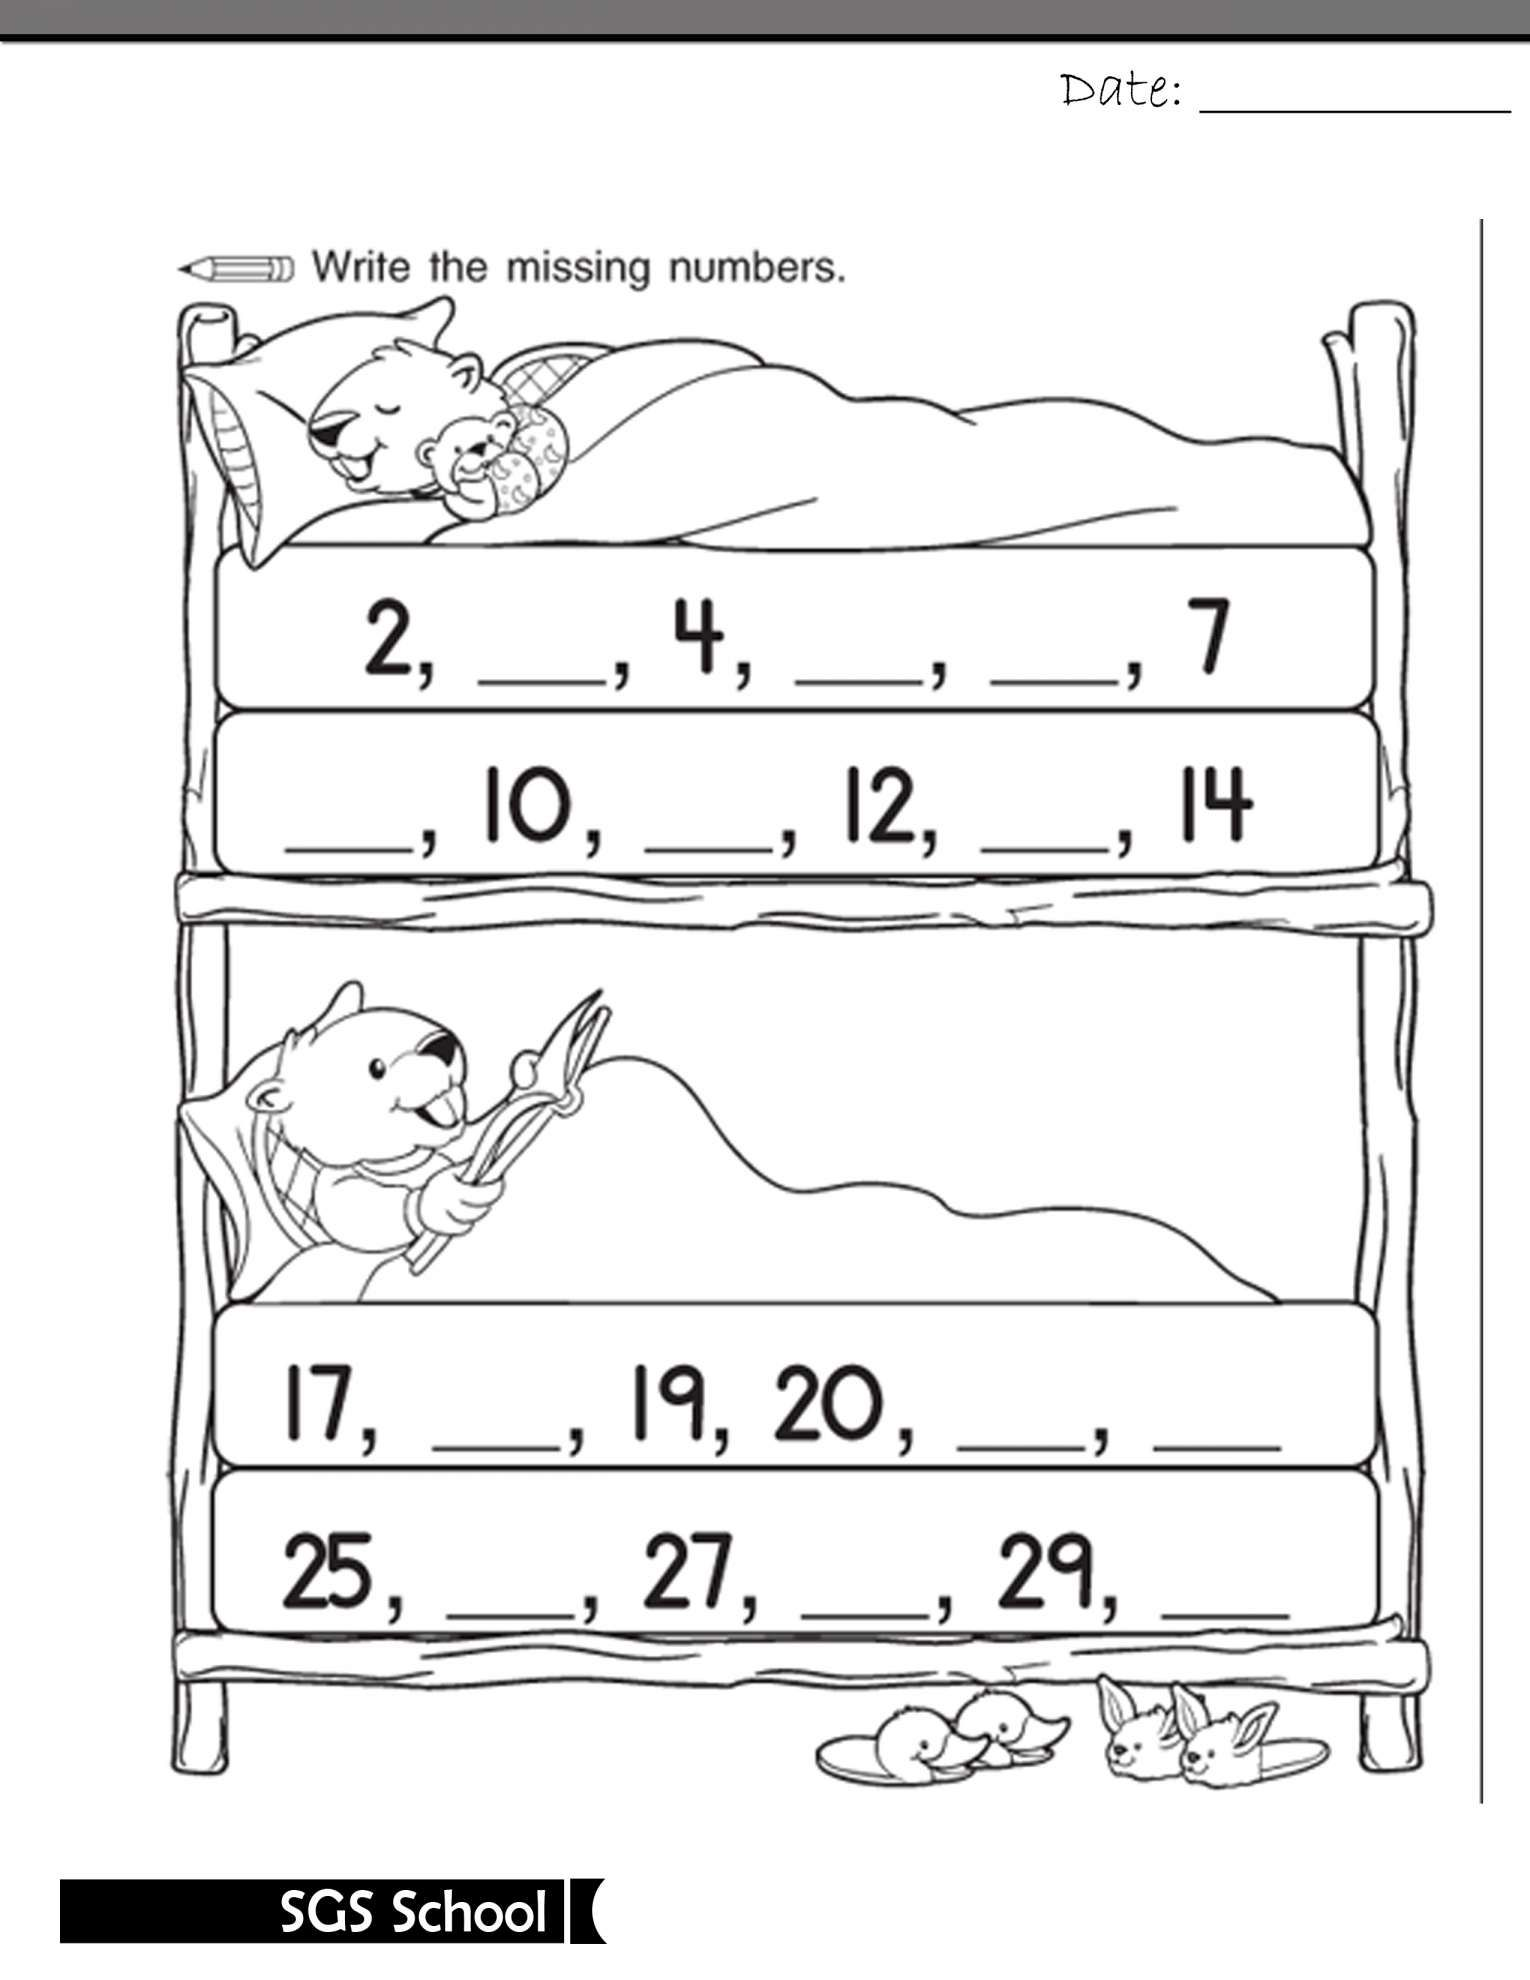 Urdu Worksheet For Kindergarten And Worksheet Of Urdu For